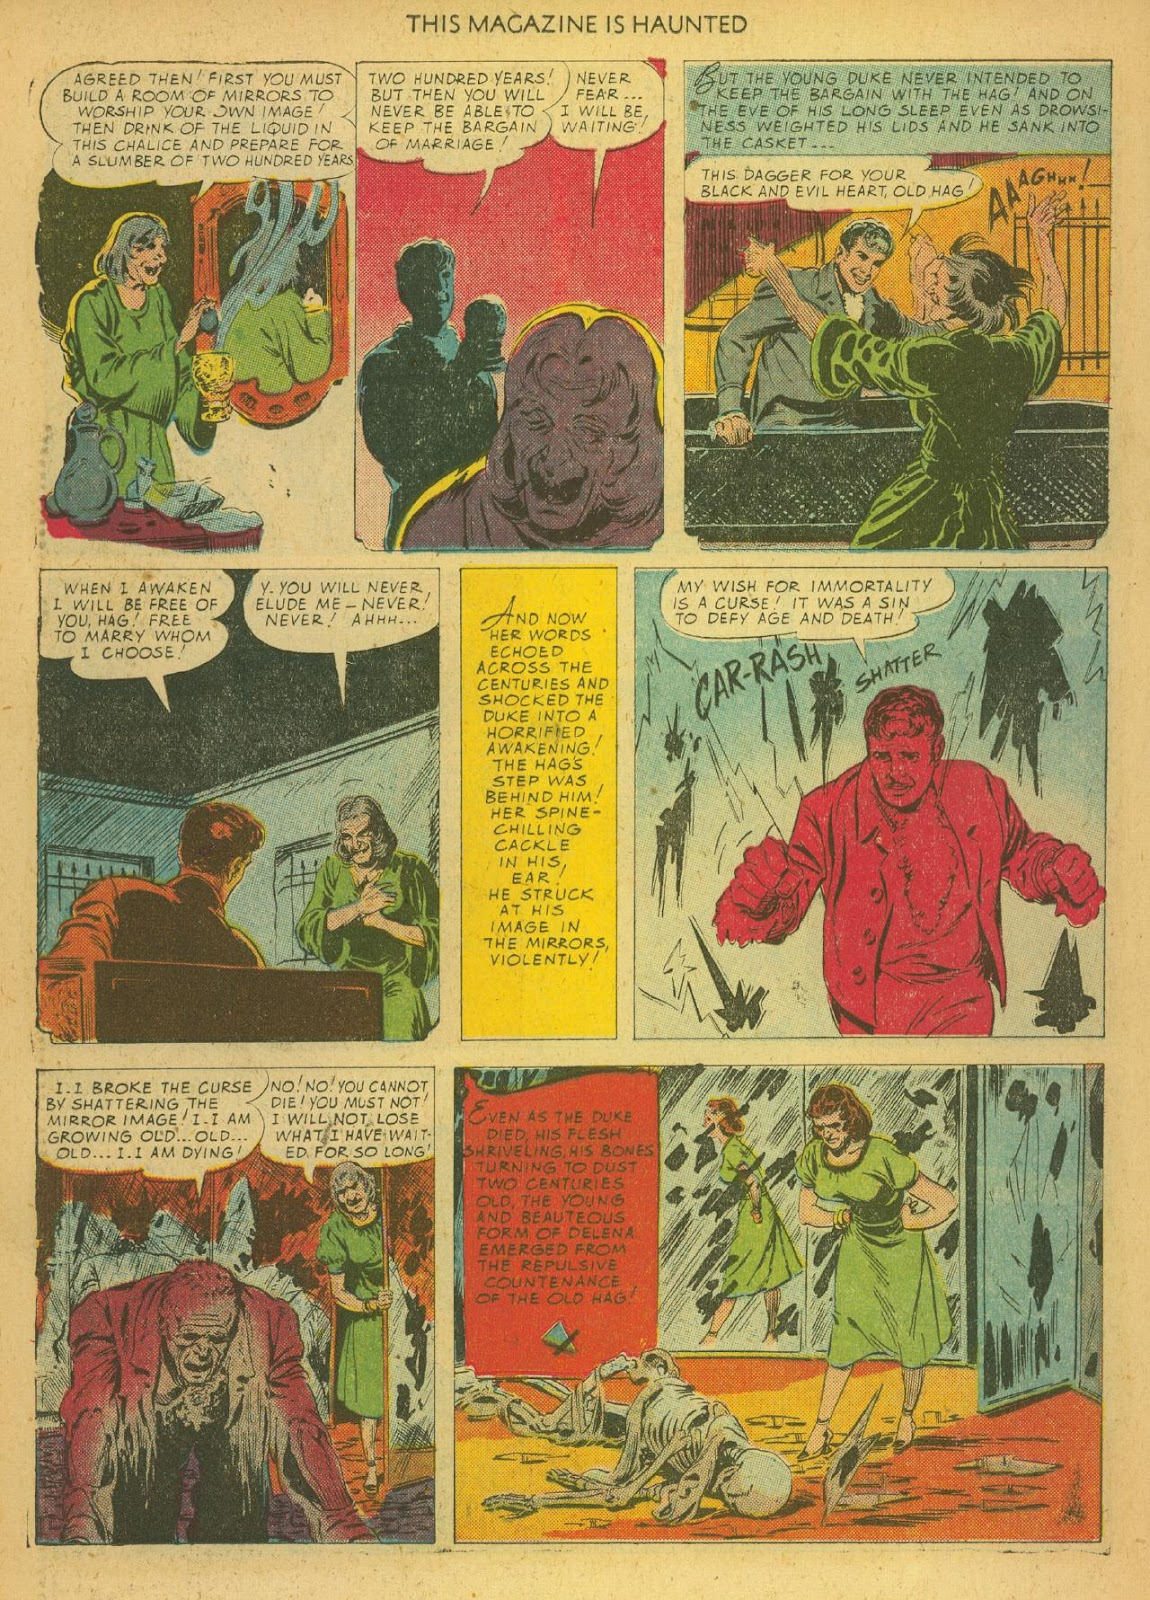 Read online This Magazine Is Haunted comic -  Issue #1 - 14